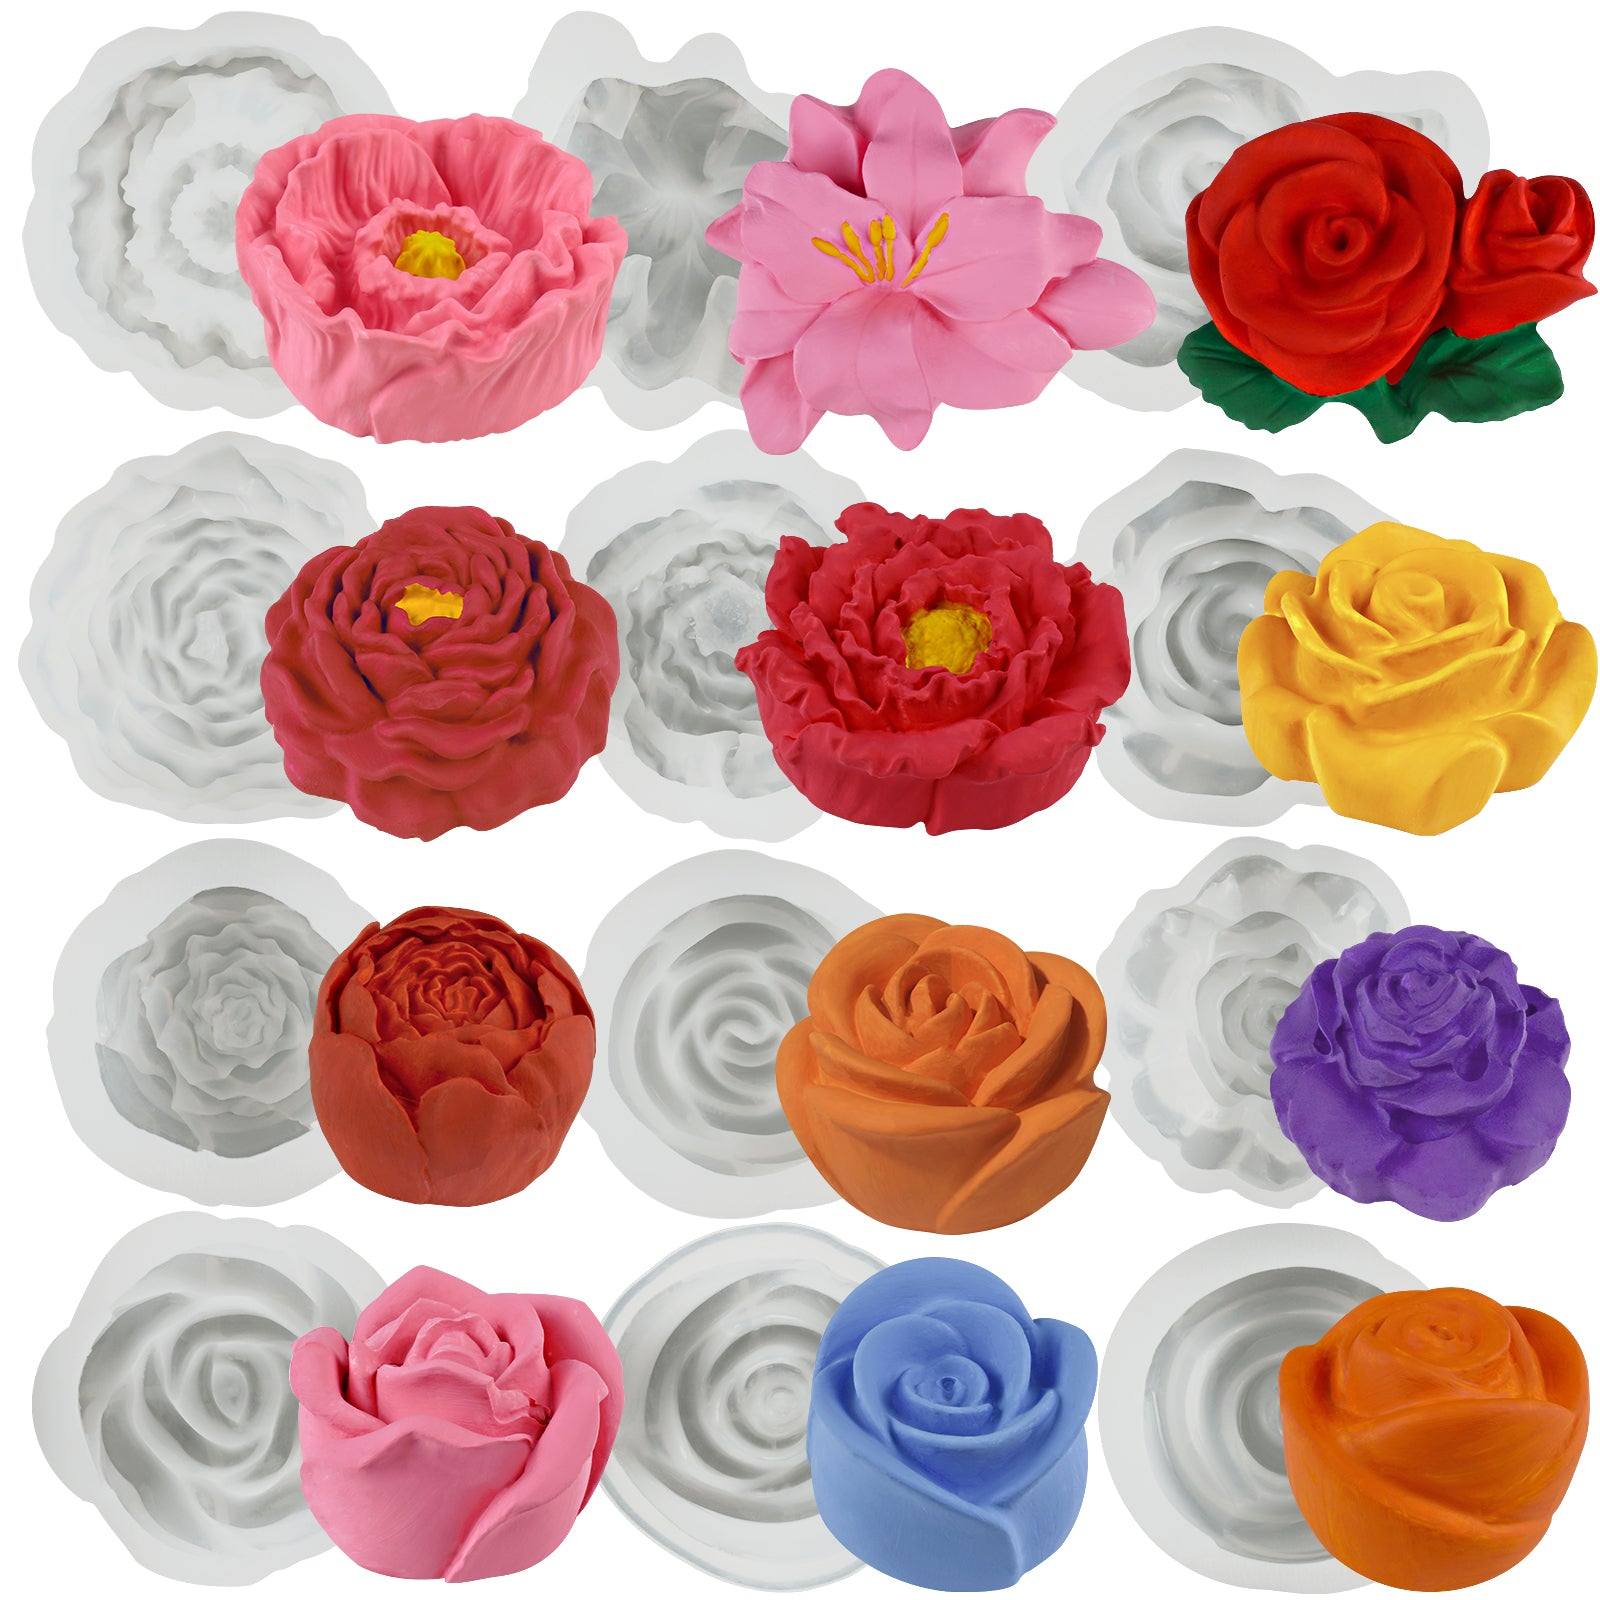 Large Flowers Silicone Molds Set 12-Count Height 0.9-1.7inch